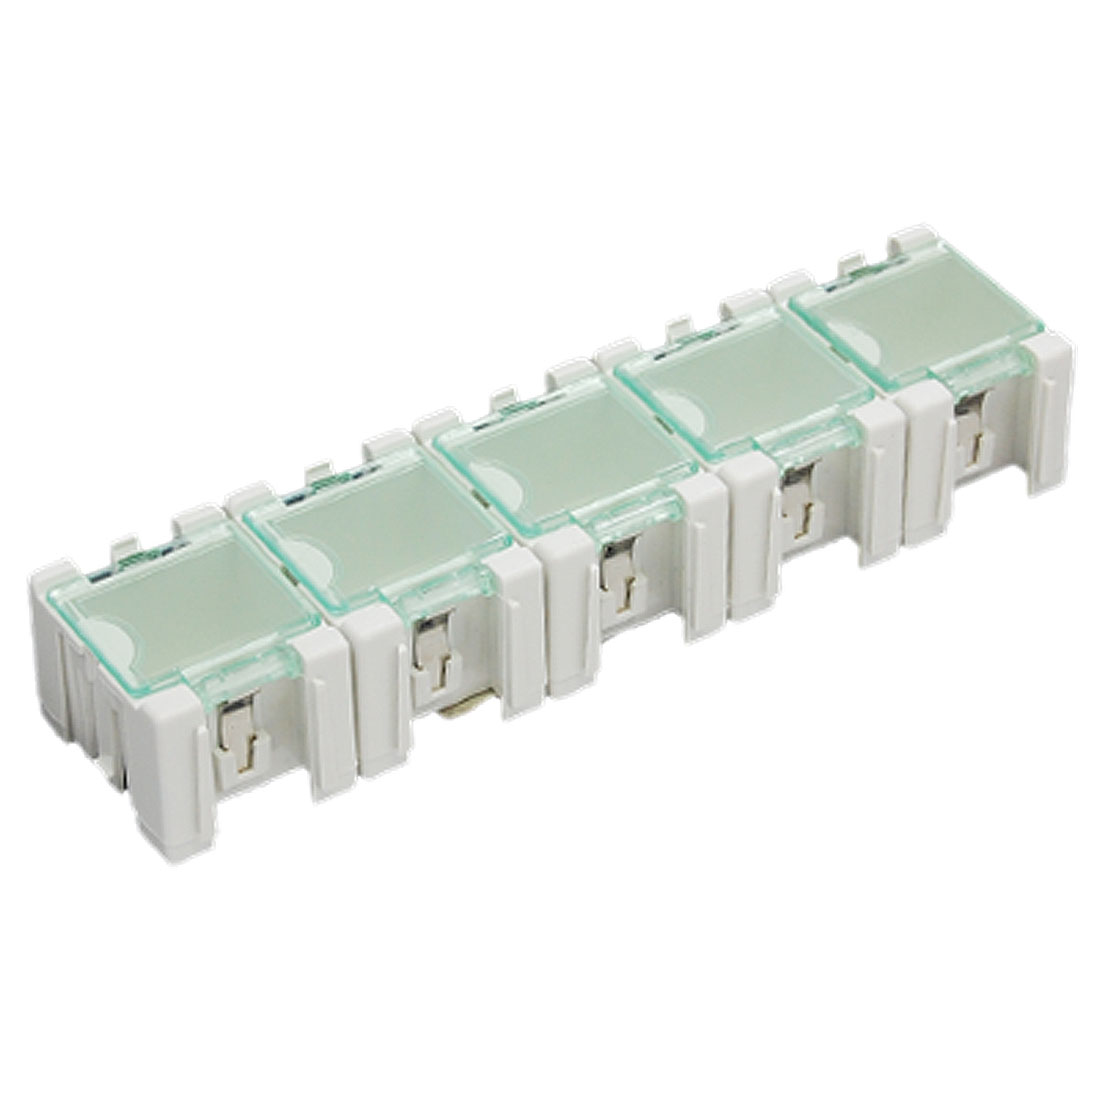 Accessories Cases Components Storage Electronic Boxes